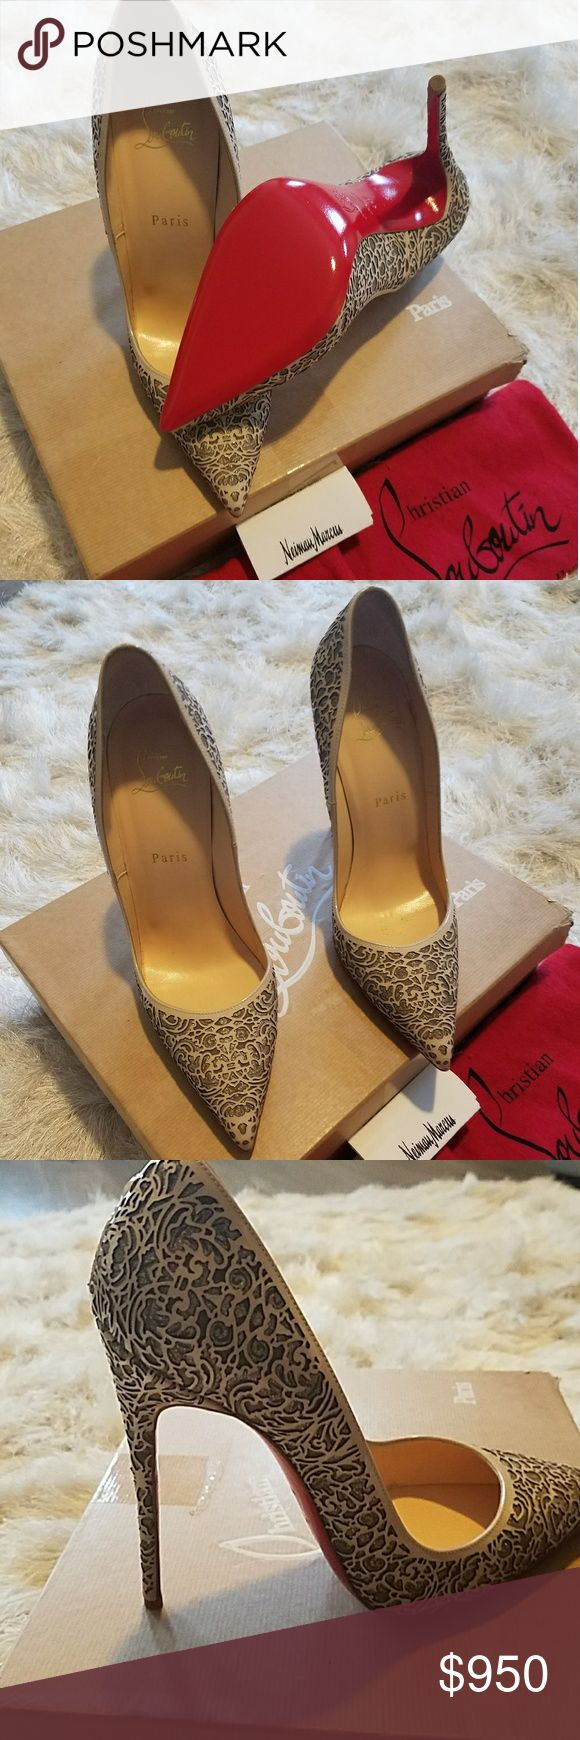 chaussures louboutin outlet